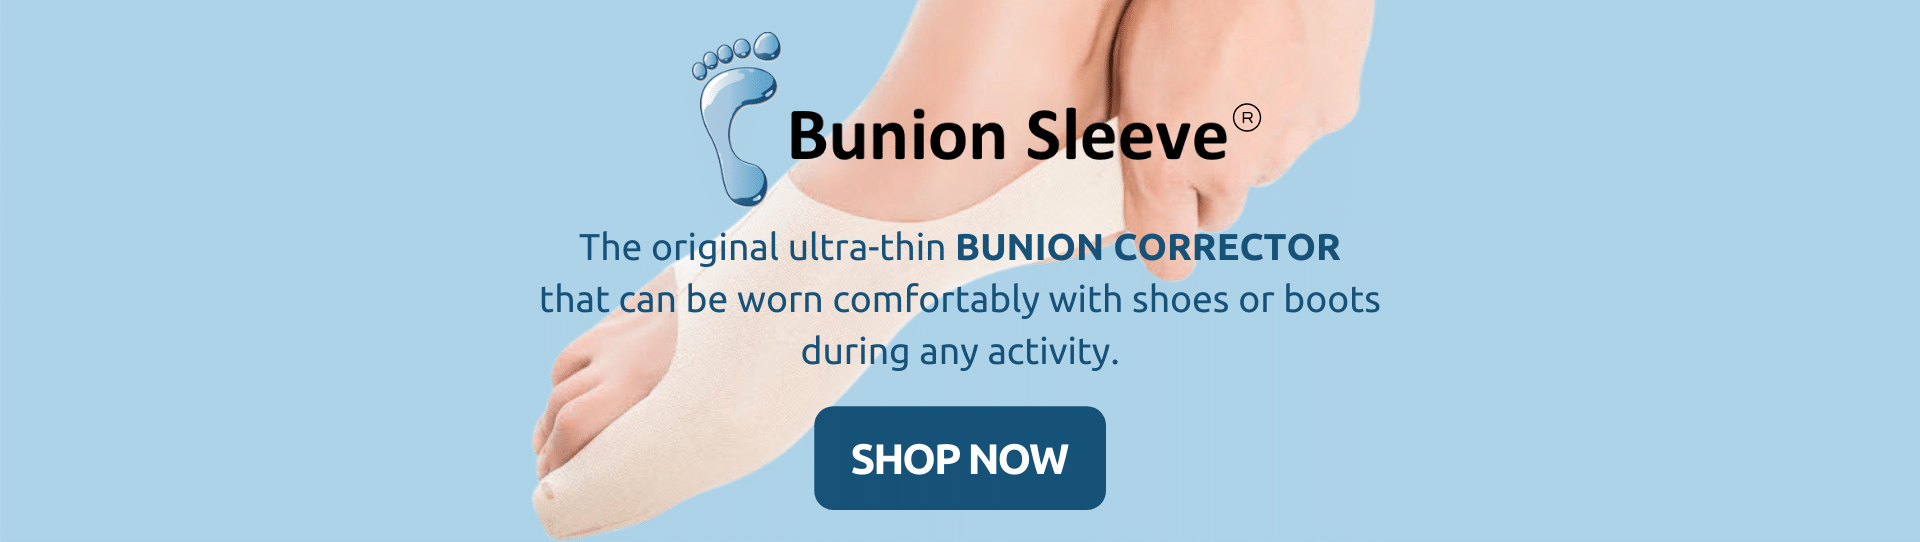 Buy Bunion Sleeve